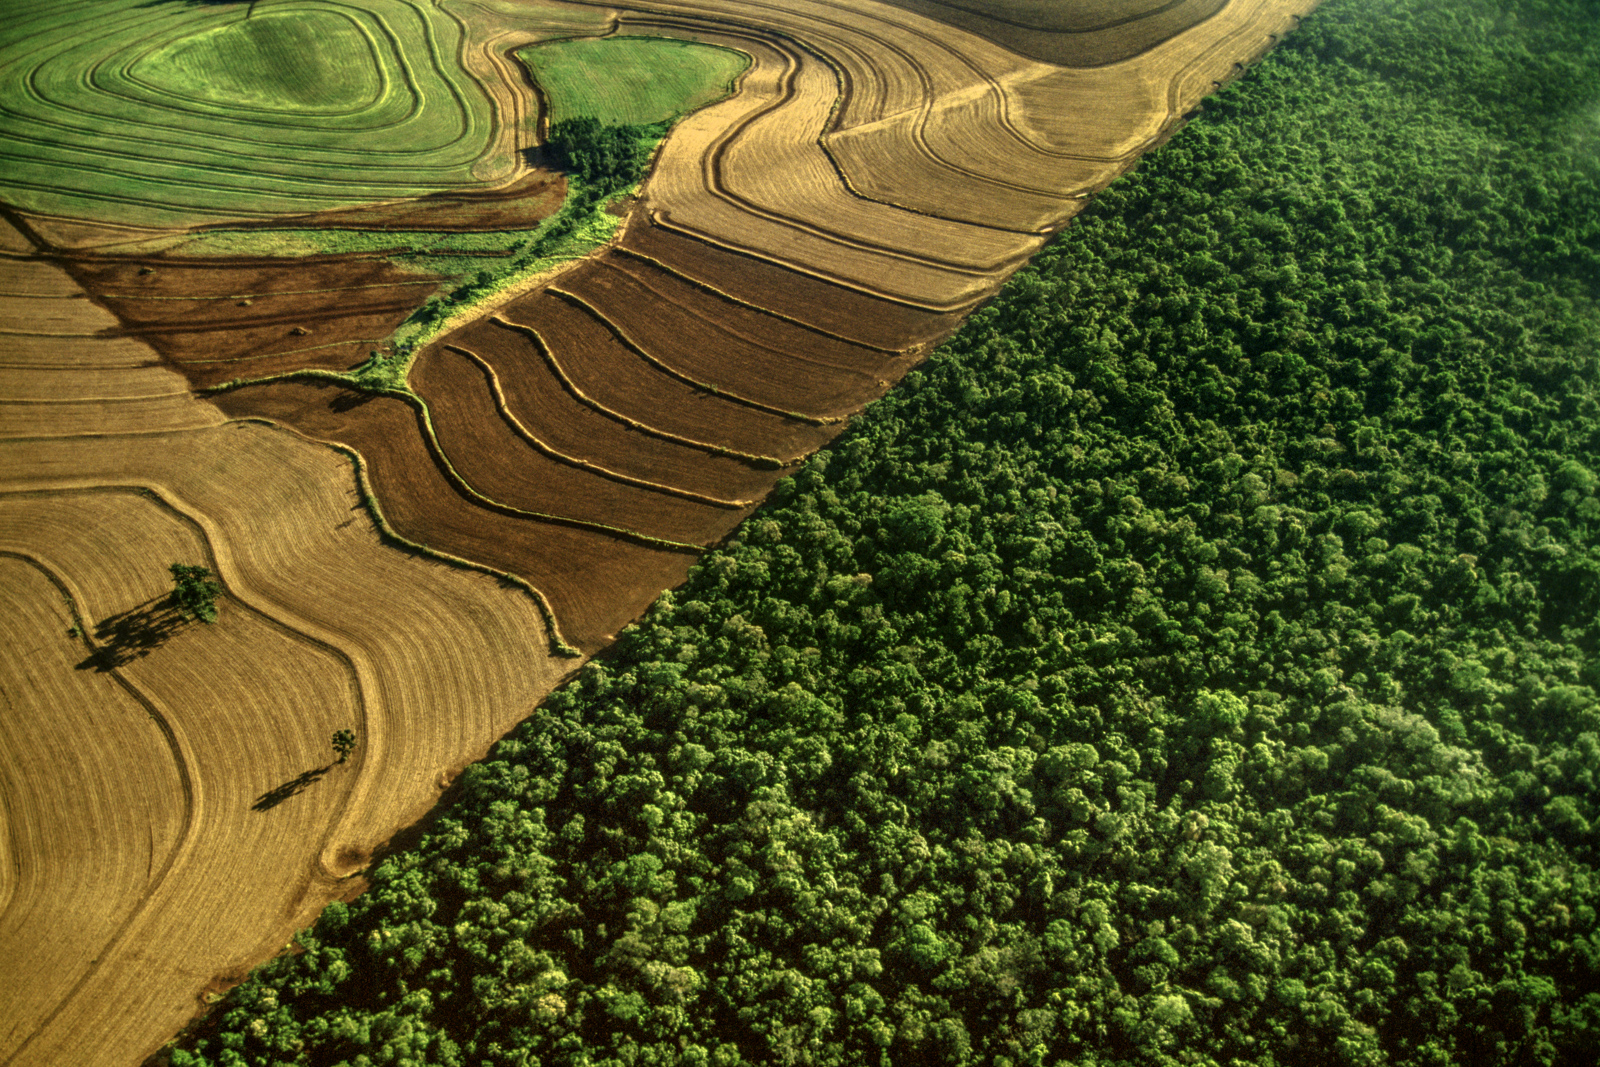 Cropland bordering rainforest habitat, Iguacu National Park, Brazil